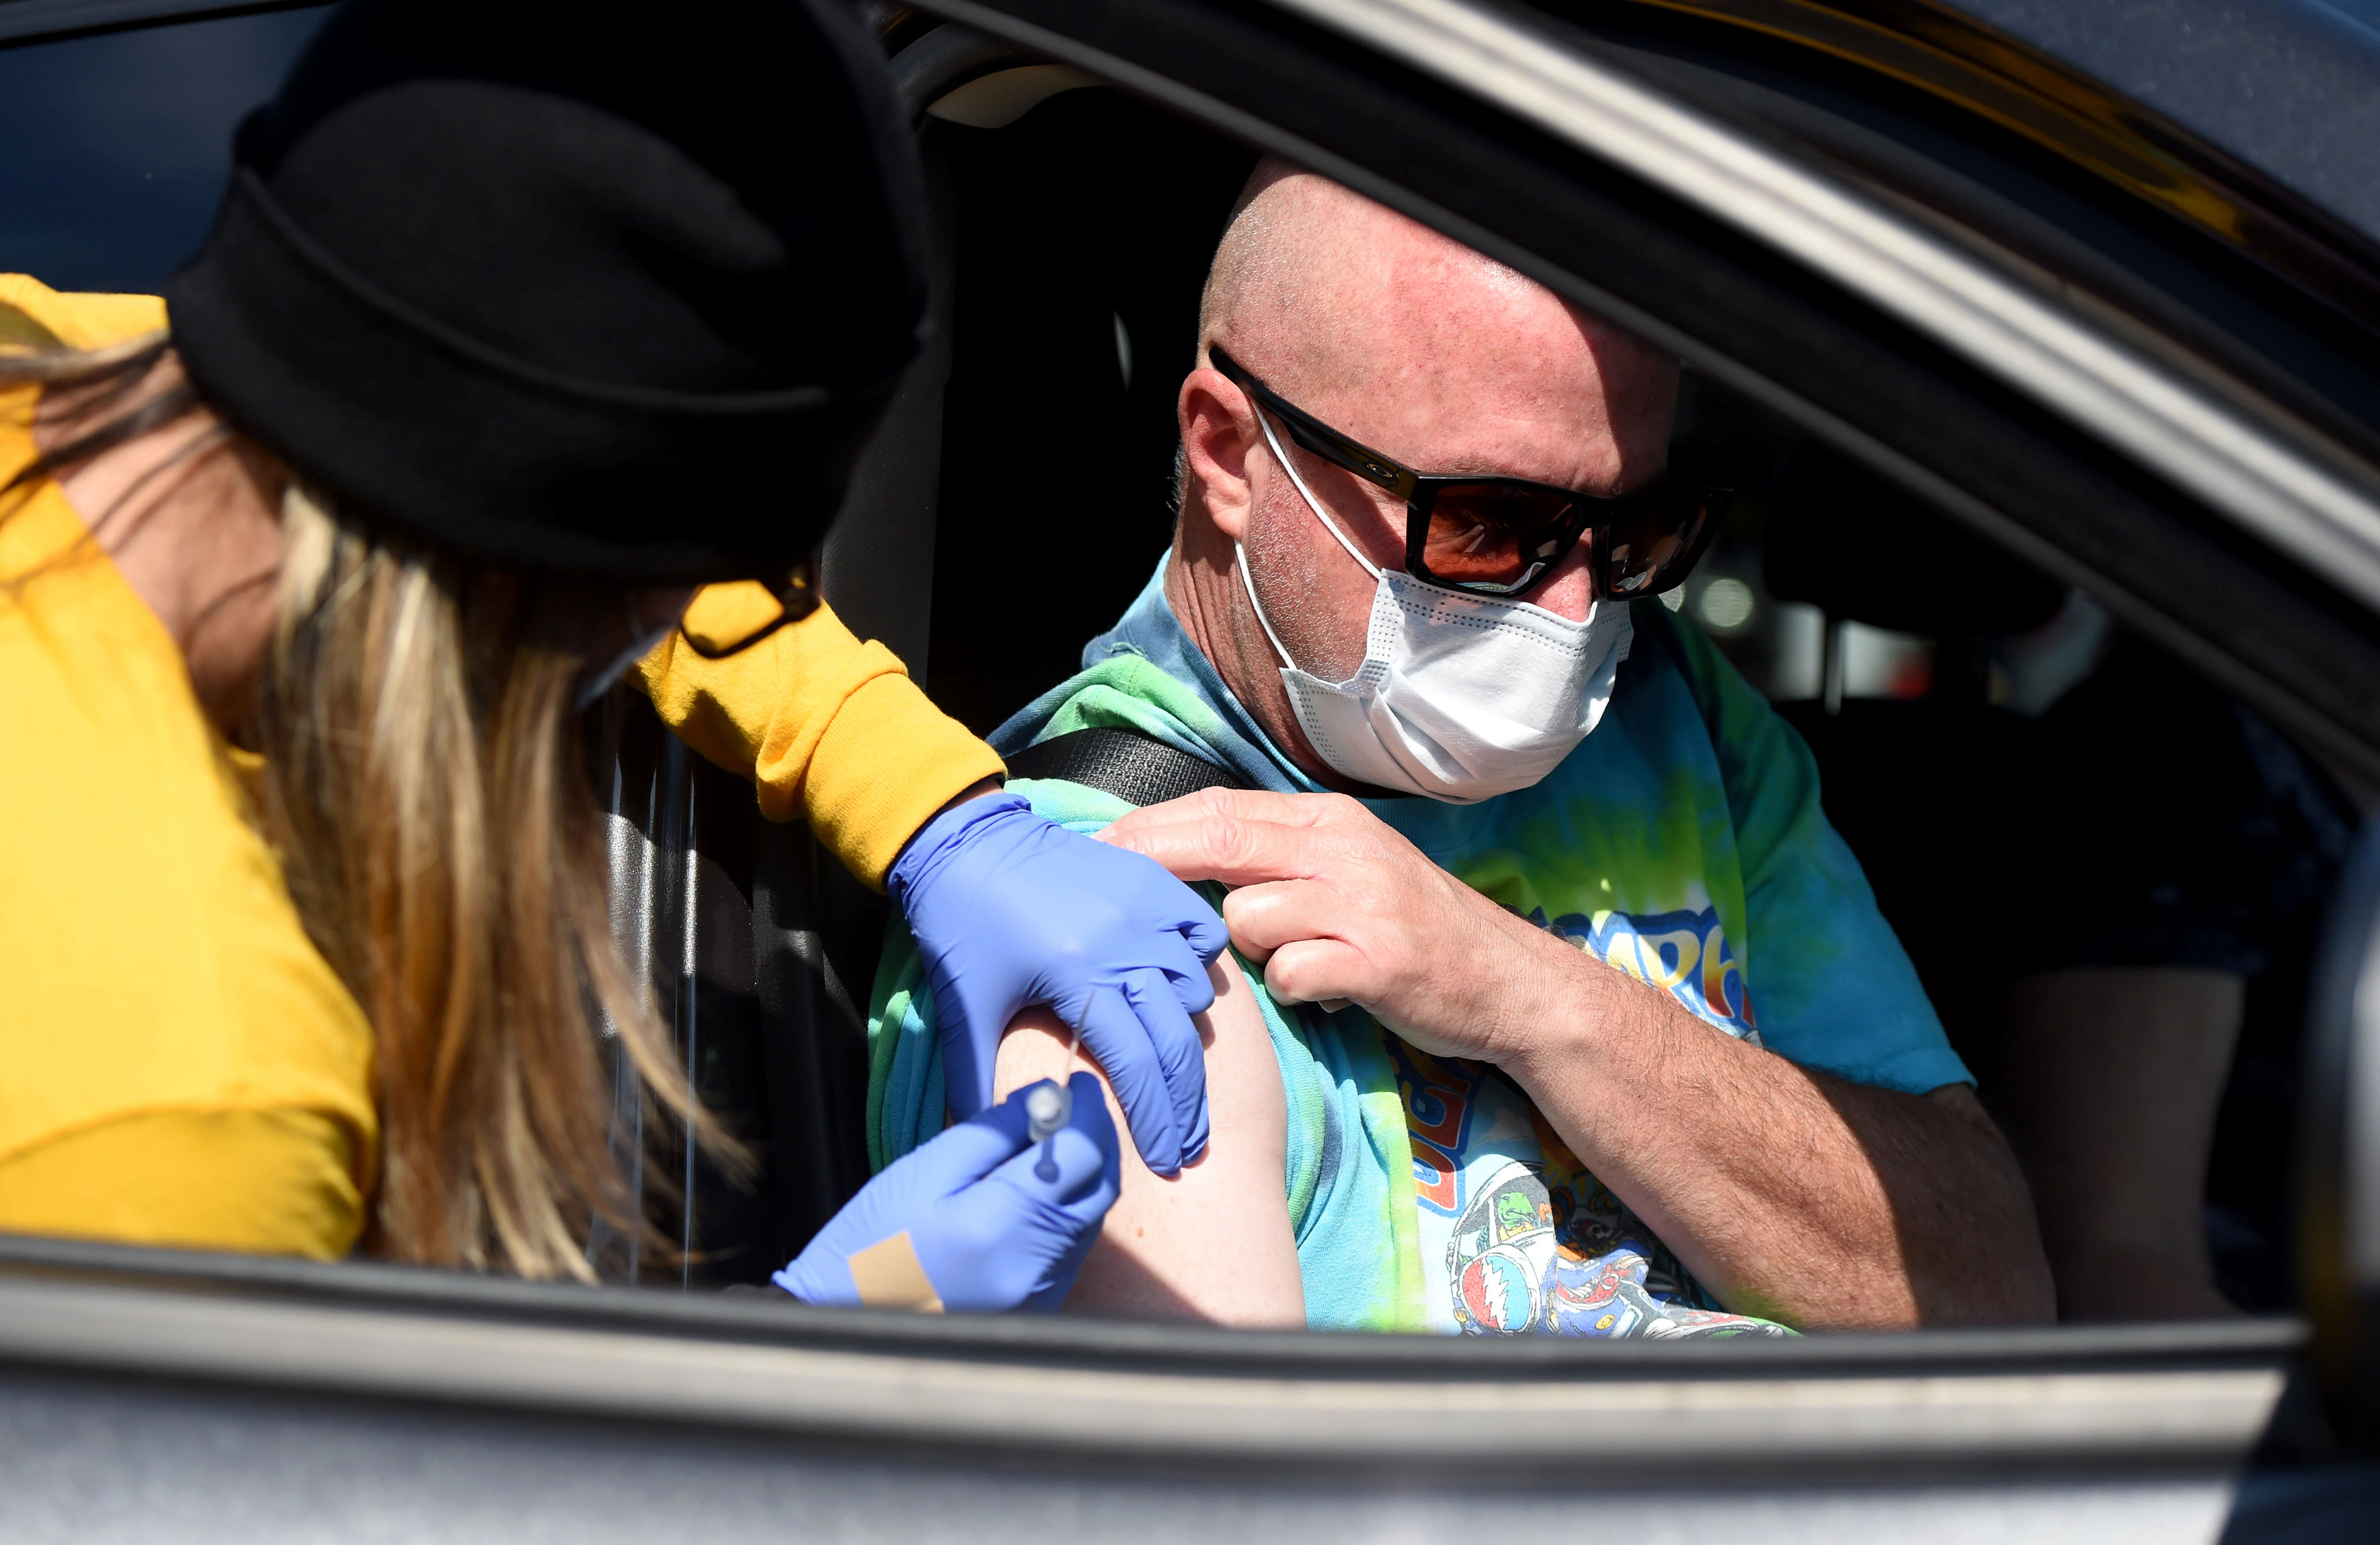 A teacher receives a vaccine from his car on a sunny day. He is wearing a white protective mask.